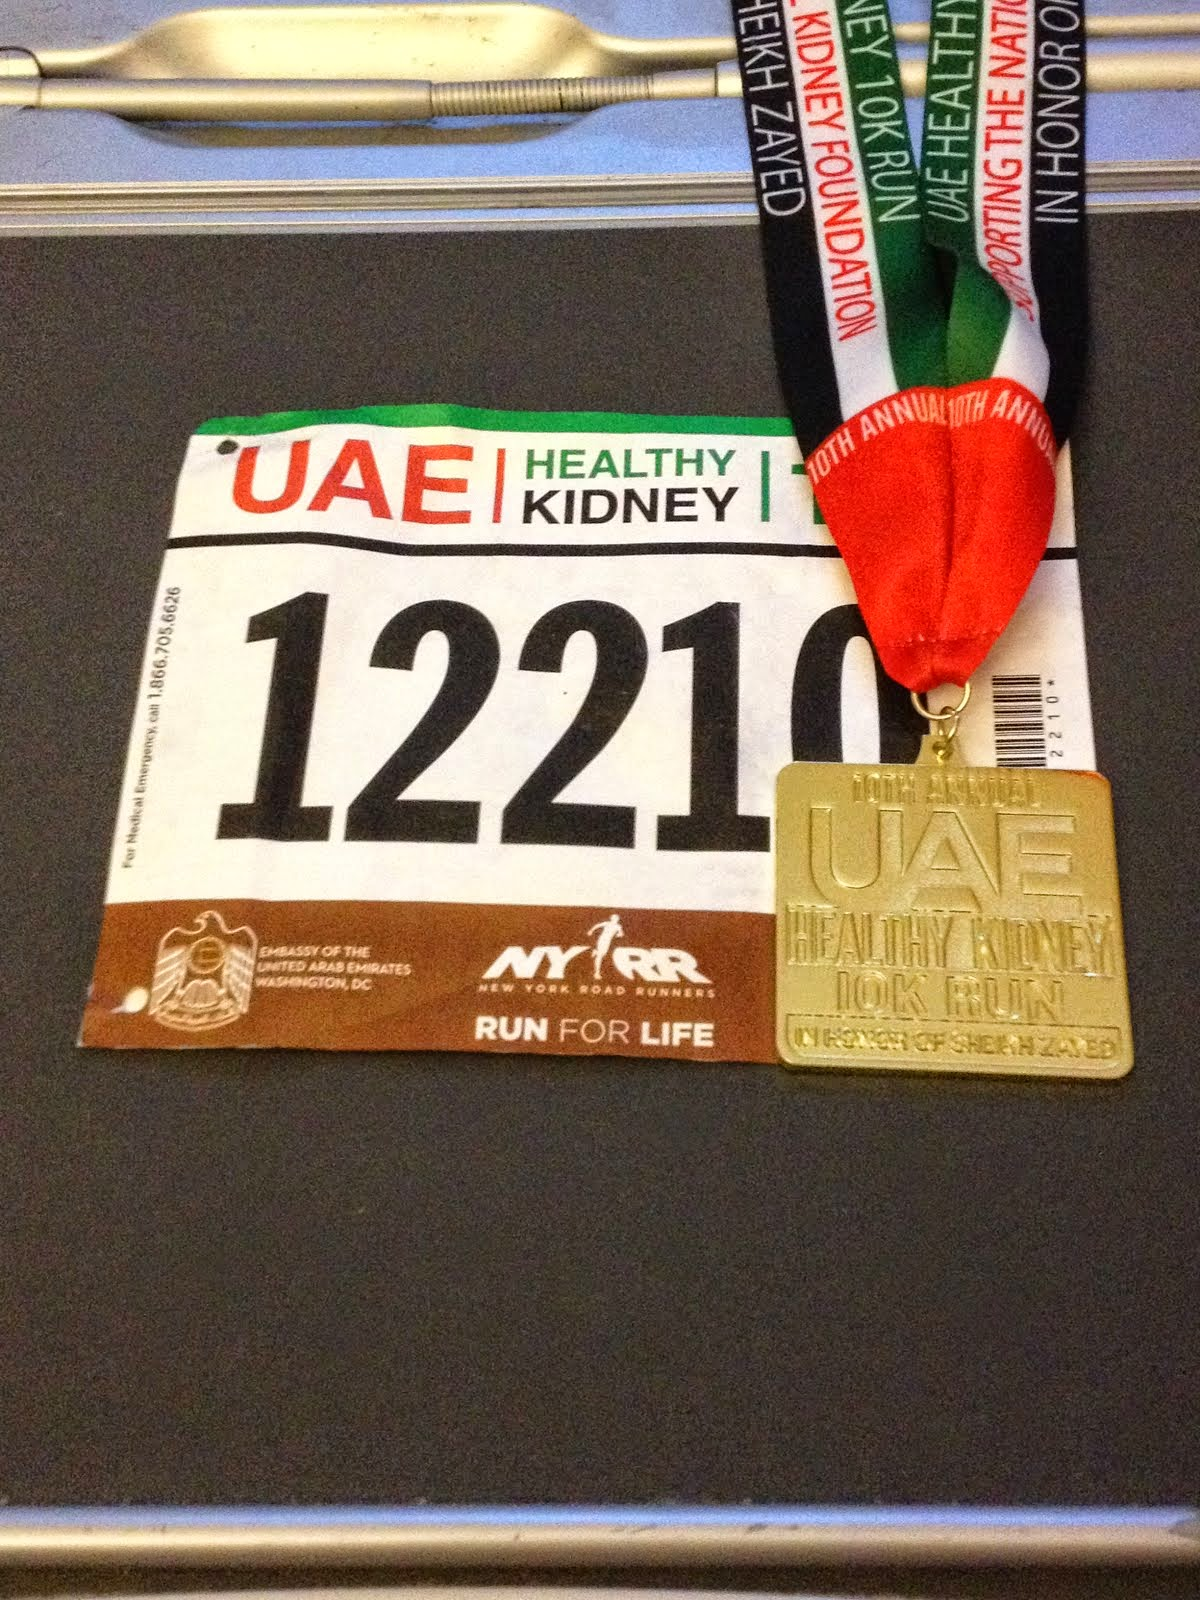 UAE Healthy Kidney